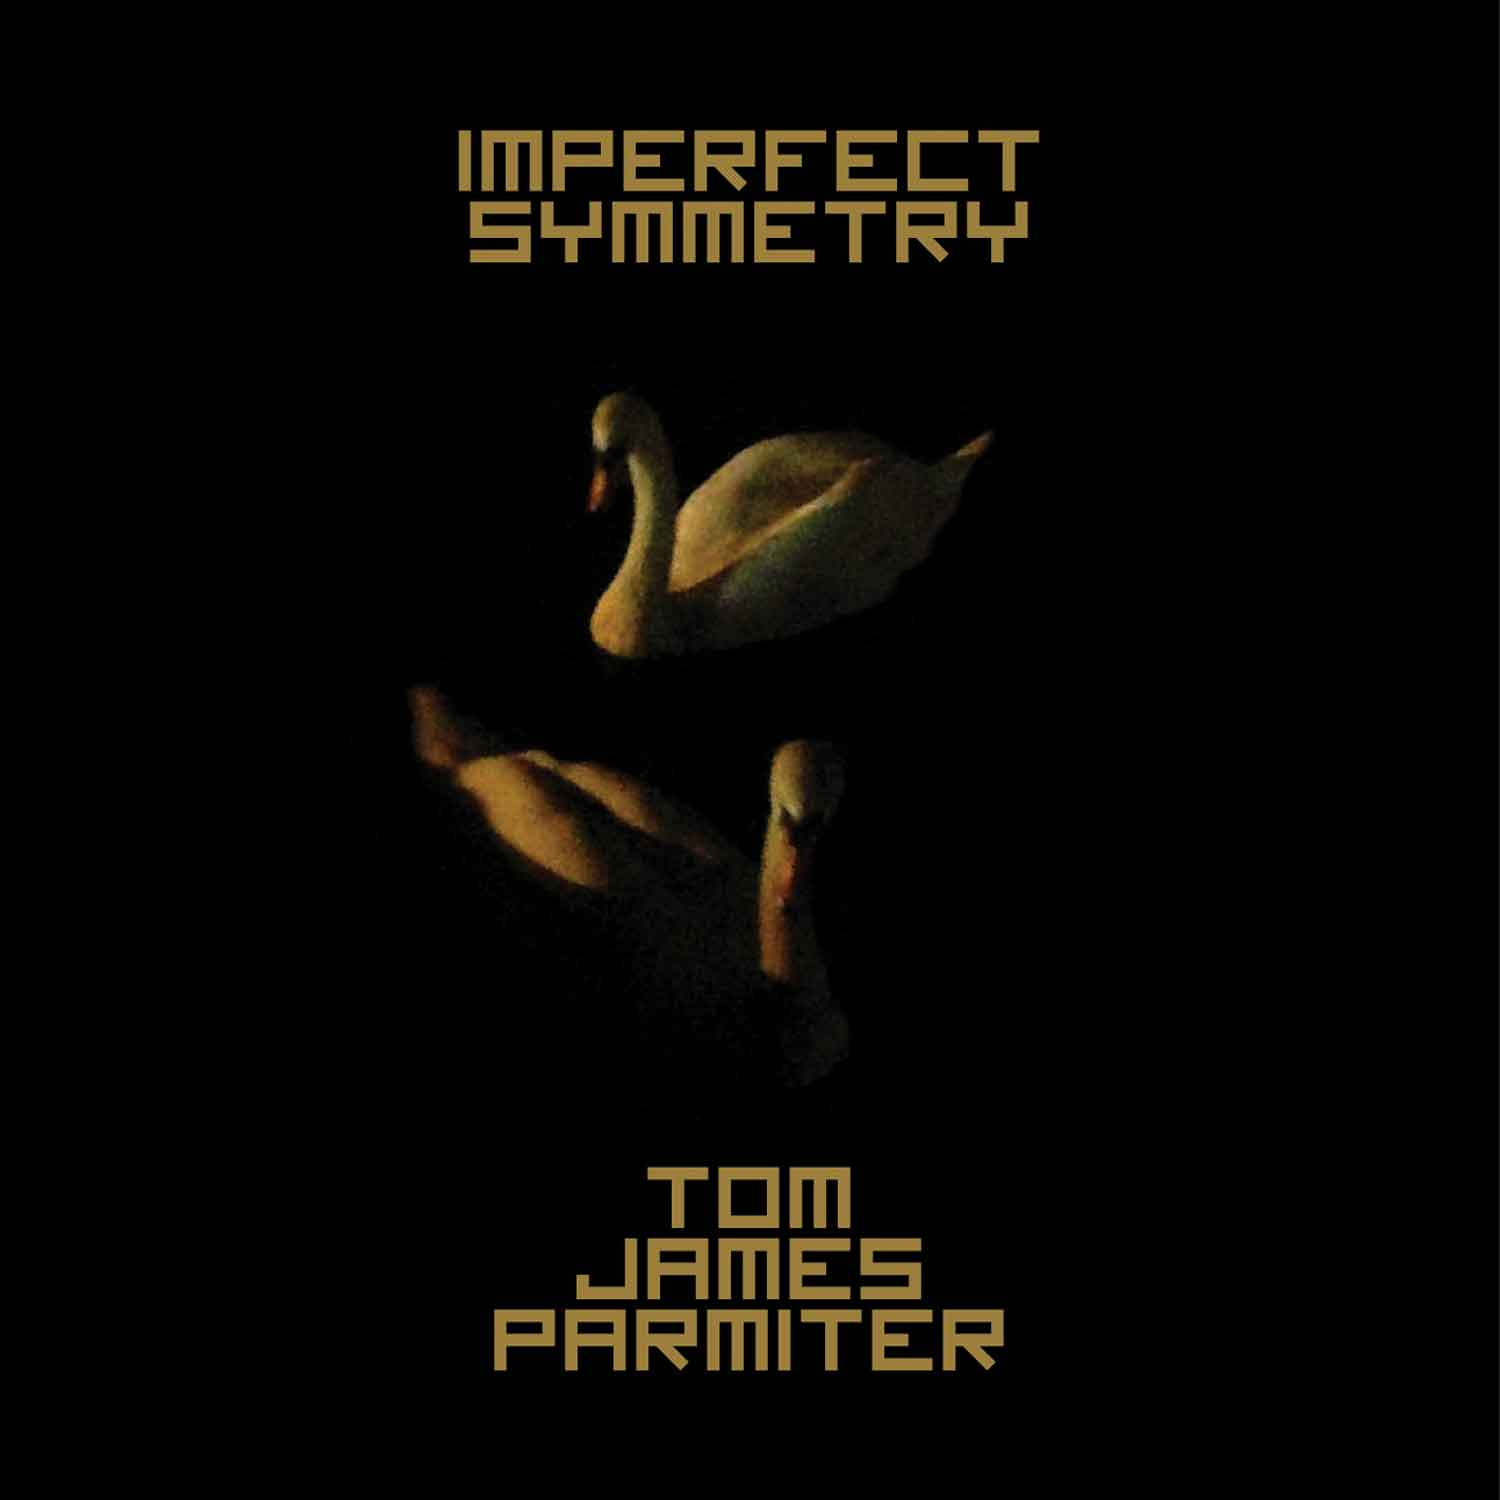 Tom James Parminter - Imperfect Symmetry -